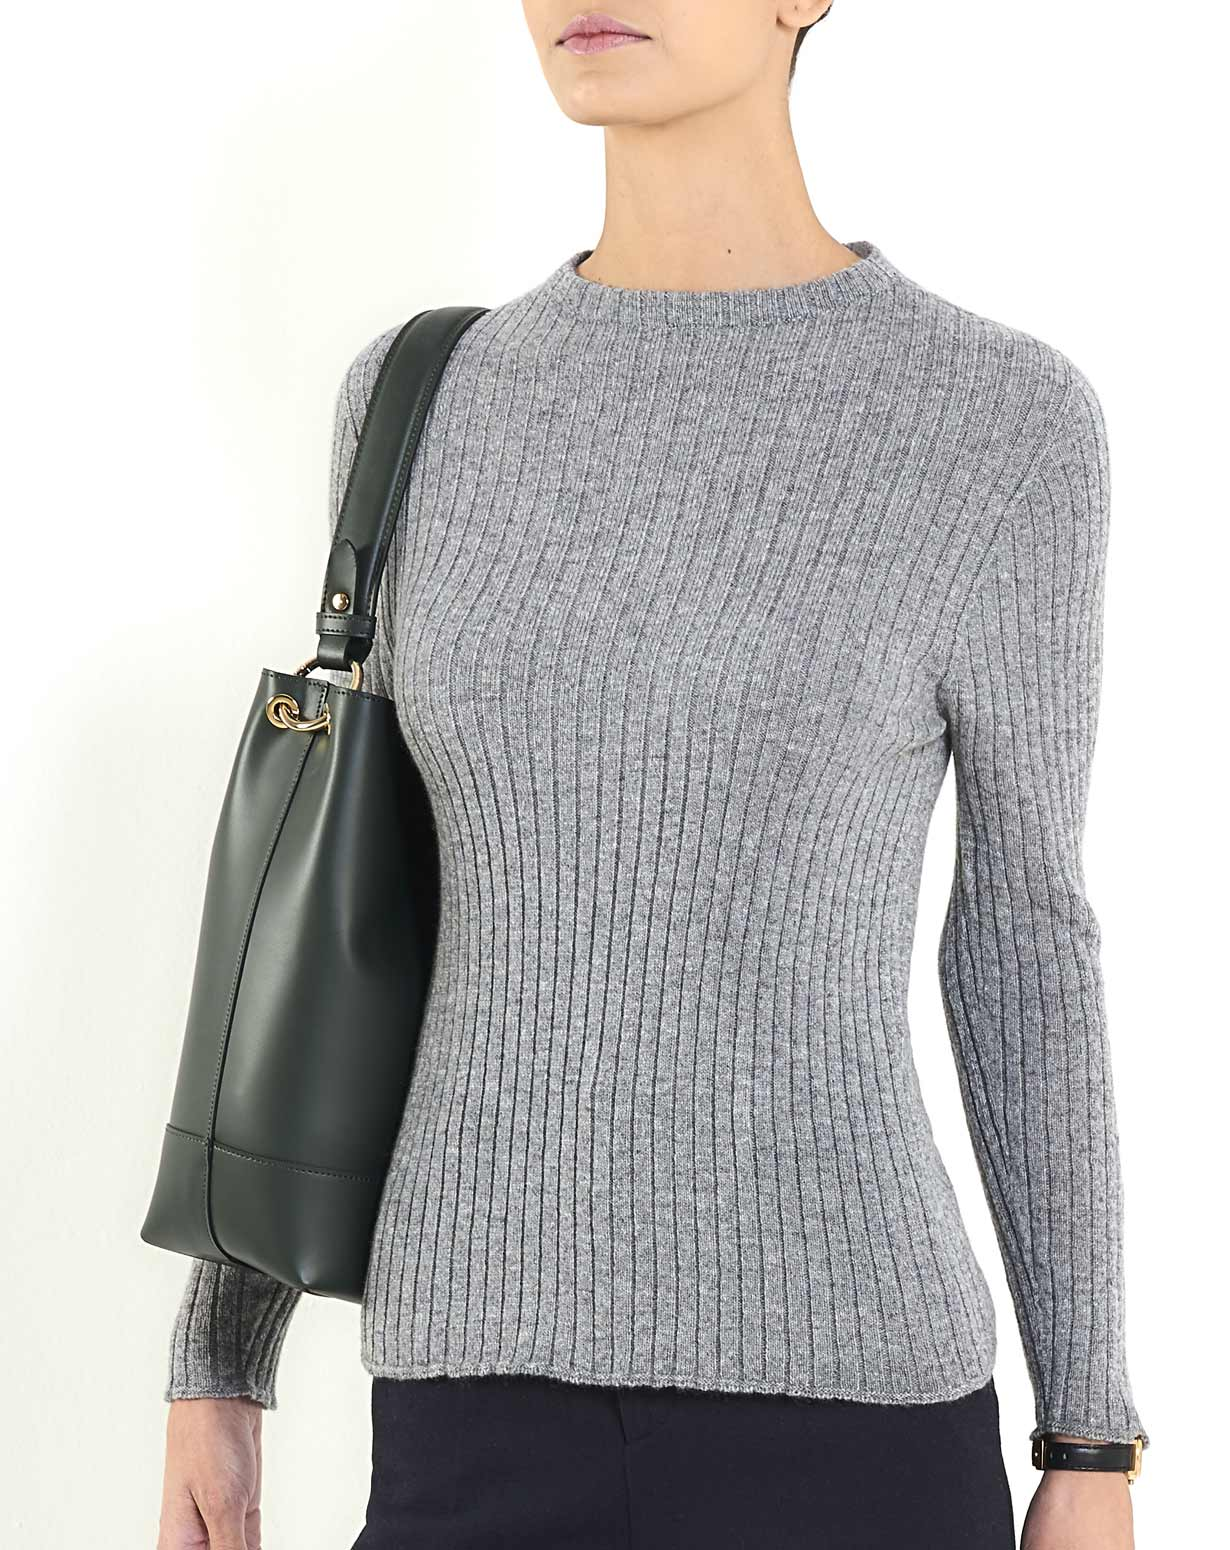 Women's Cashmere Vertical Rib Crew Neck Sweater